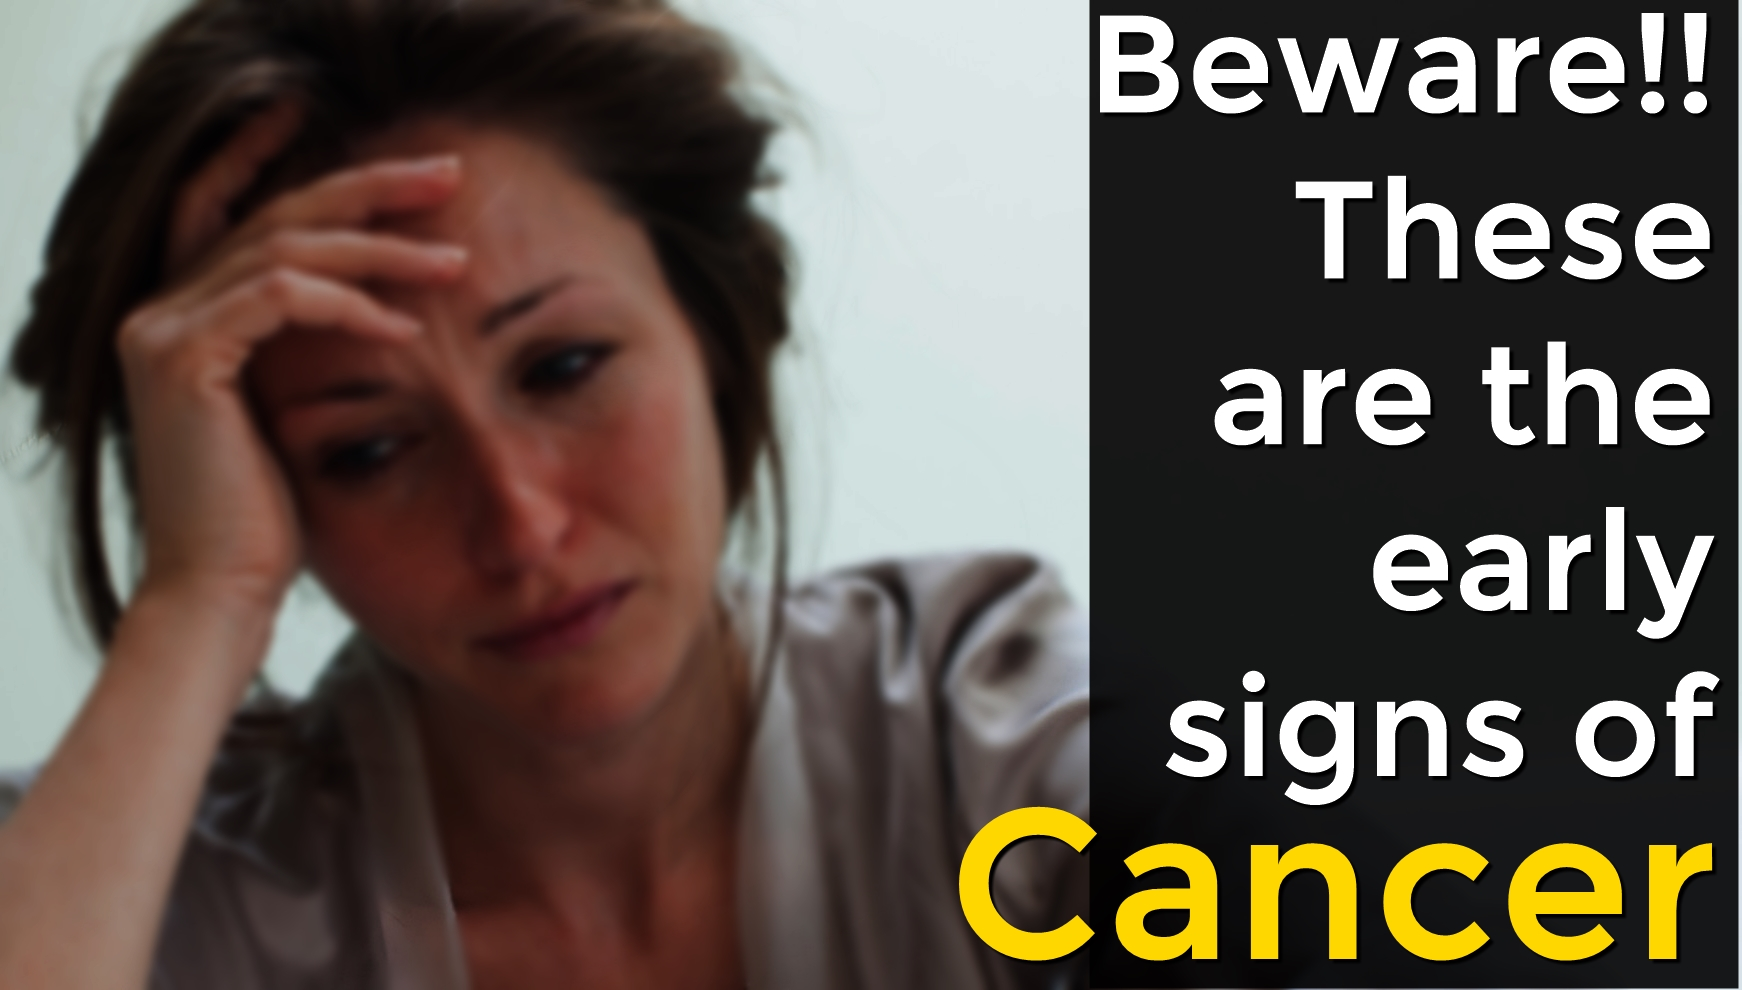 Beware! These are the 5 early signs of Cancer